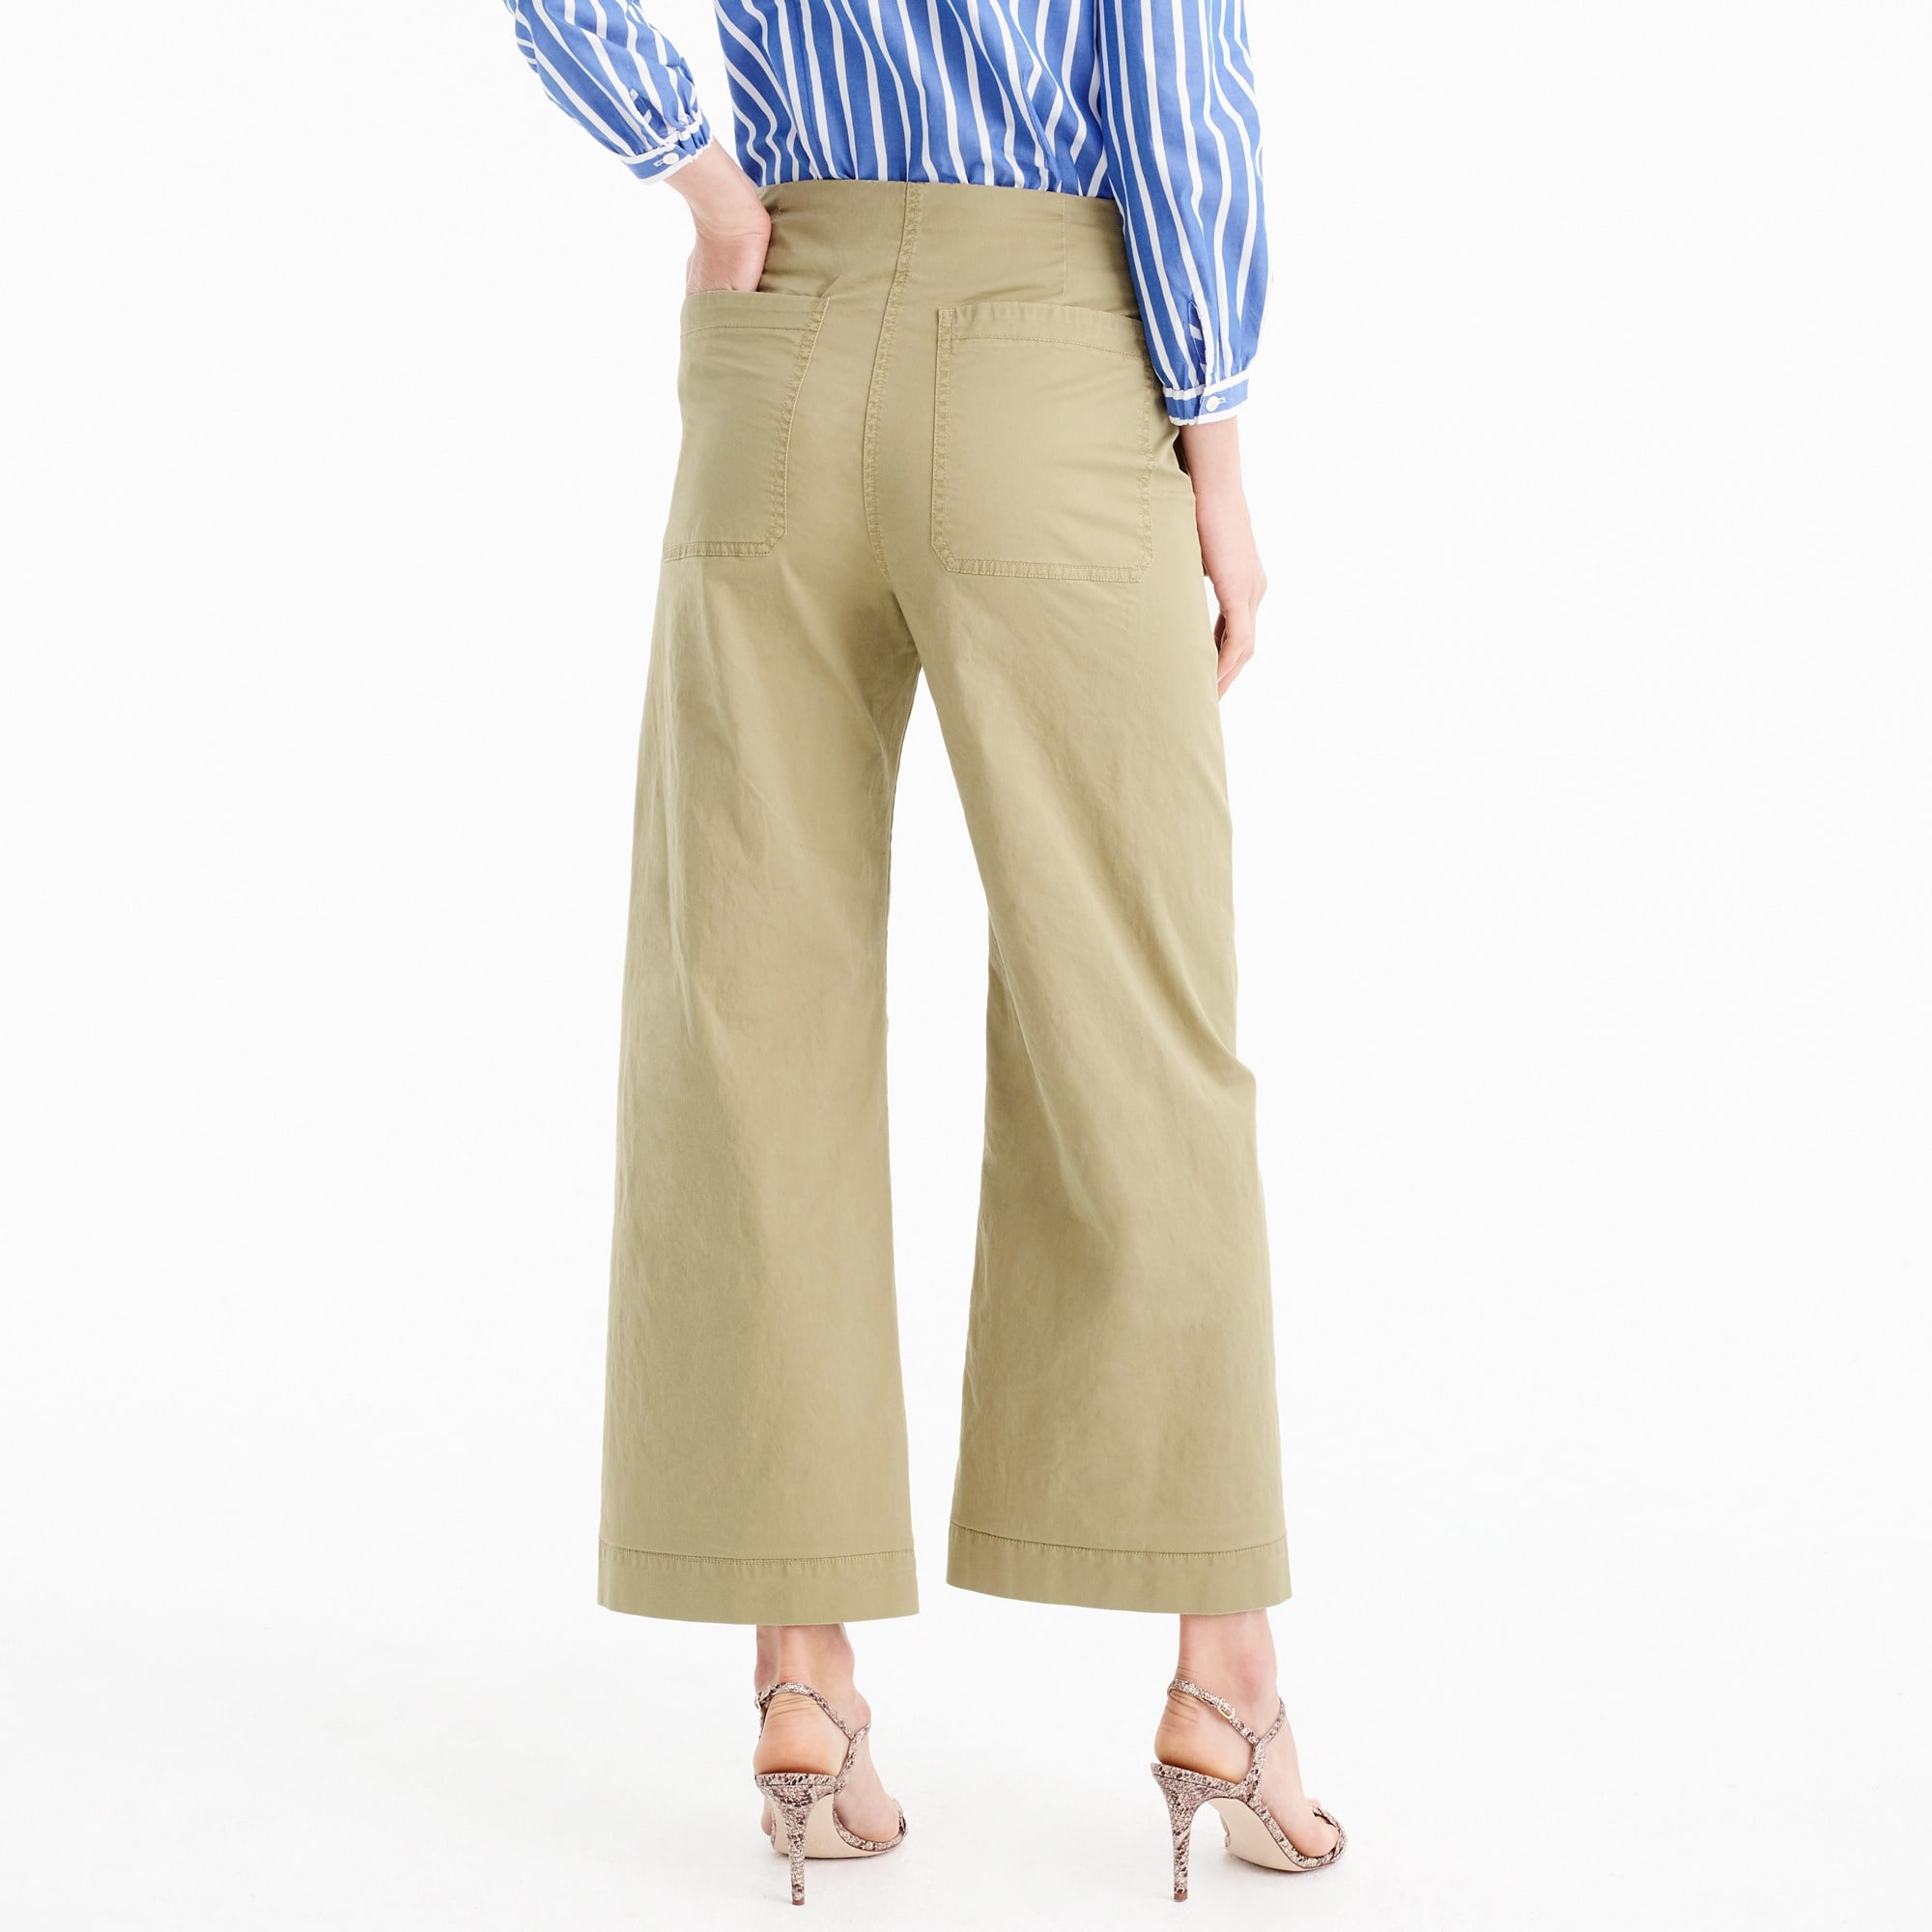 Image 3 for Cropped pant in stretch chino